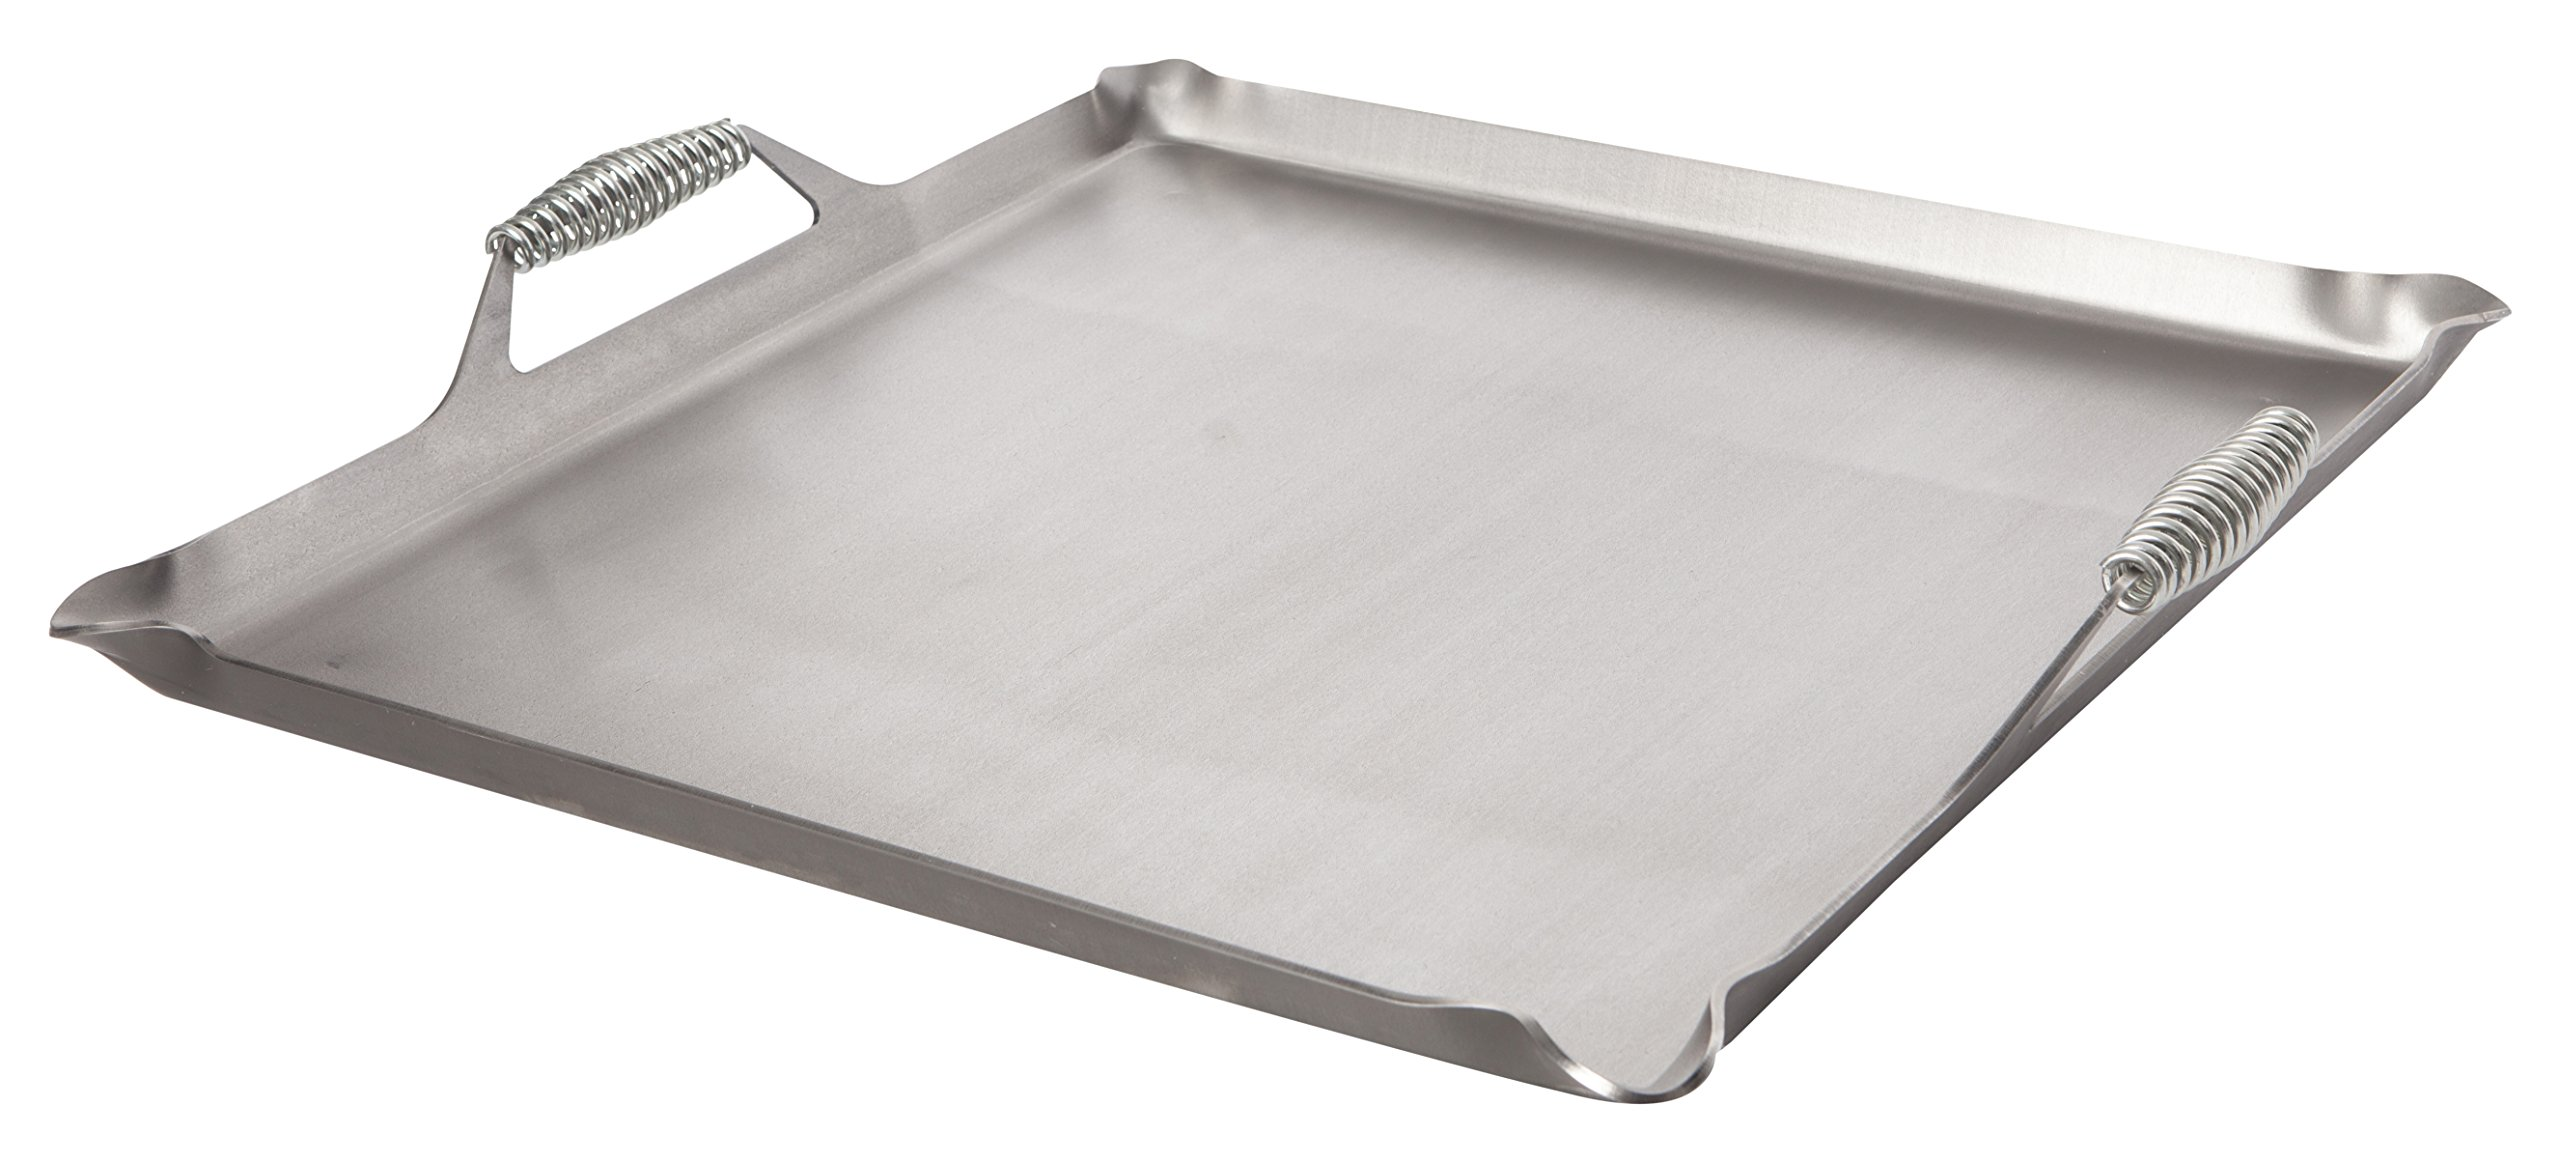 Rocky Mountain Cookware Master Chef 7 Gauge Steel Griddle, 24'' x 24'', , Metal